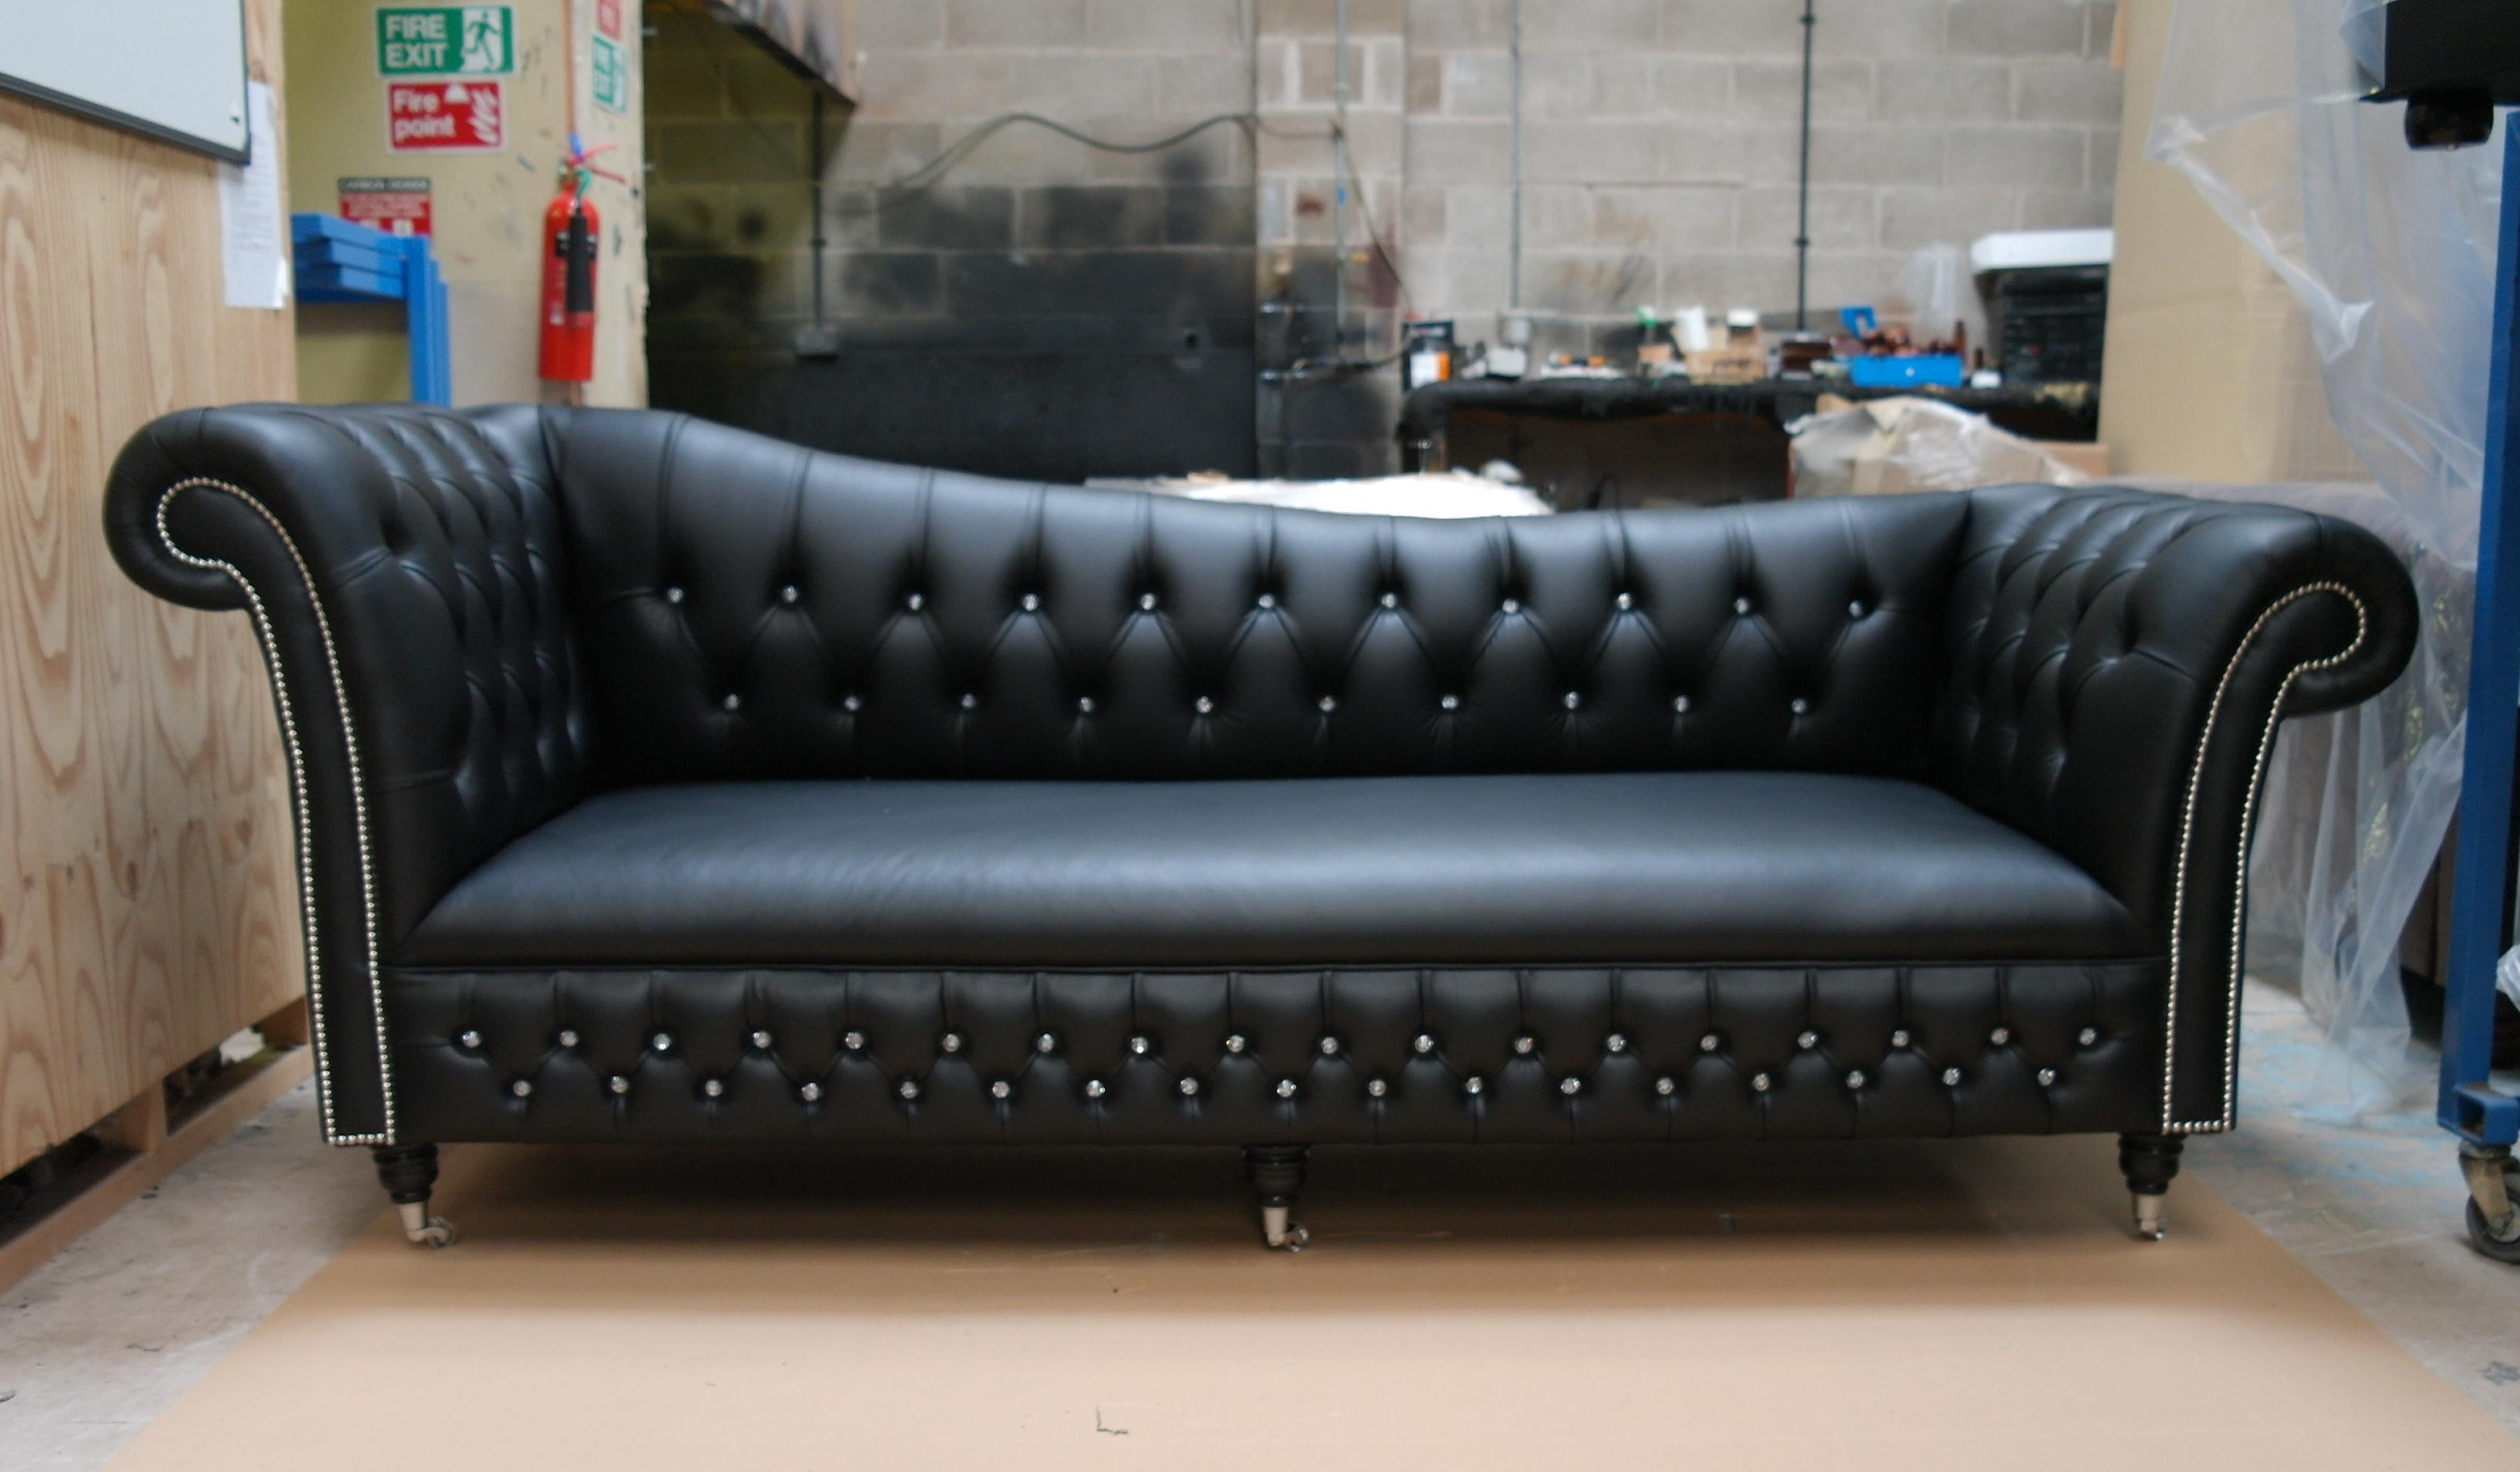 Black Chesterfield Sofa Sophia Swarowski Design Ideas | Advice For With Chesterfield Black Sofas (View 2 of 20)